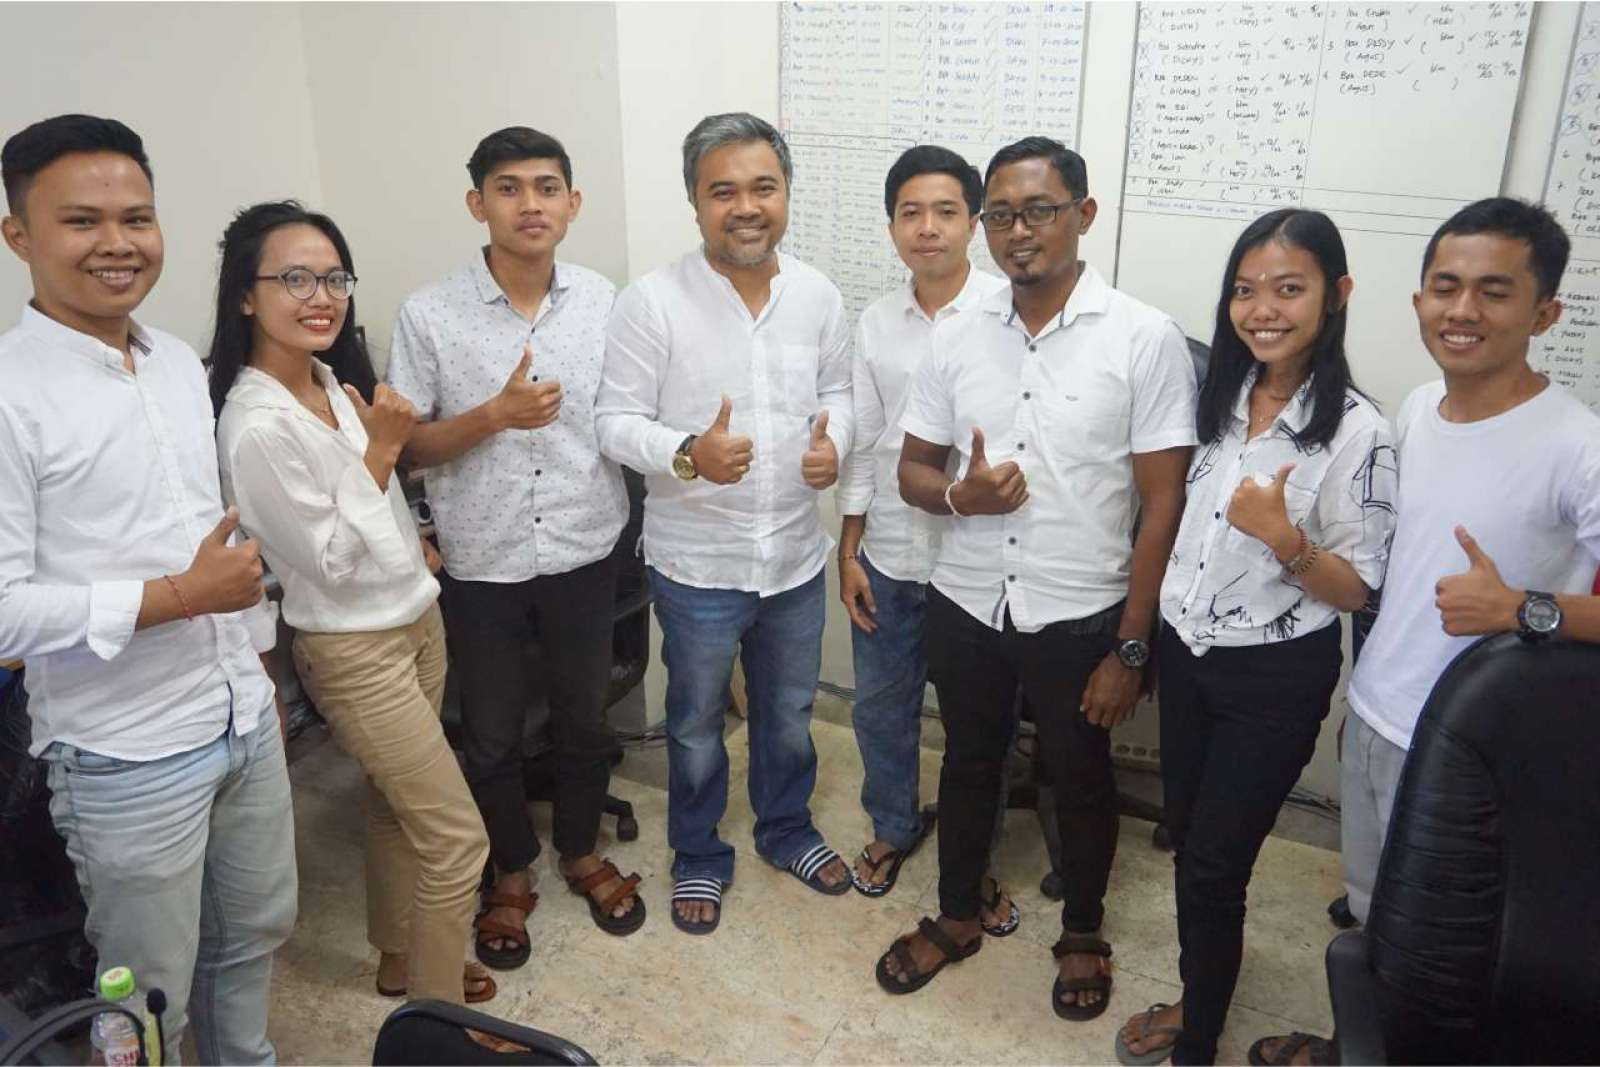 Photo with the Emporio Bali Architect Team Before Working From Home Because of the COVID-19 Virus Pa 8